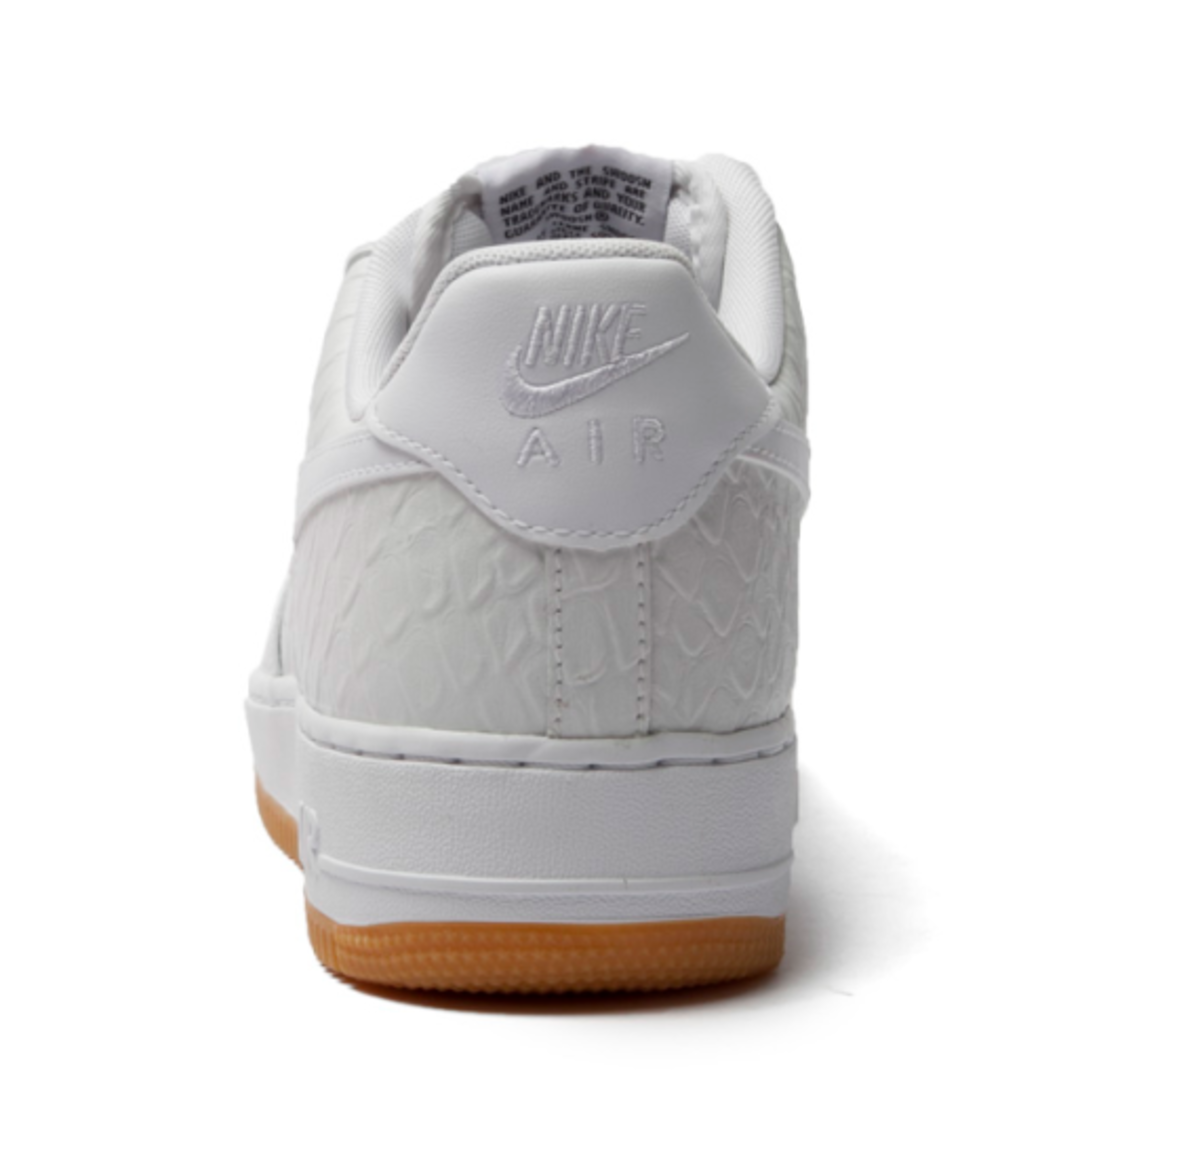 nike-air-force-1-croc-gum-06